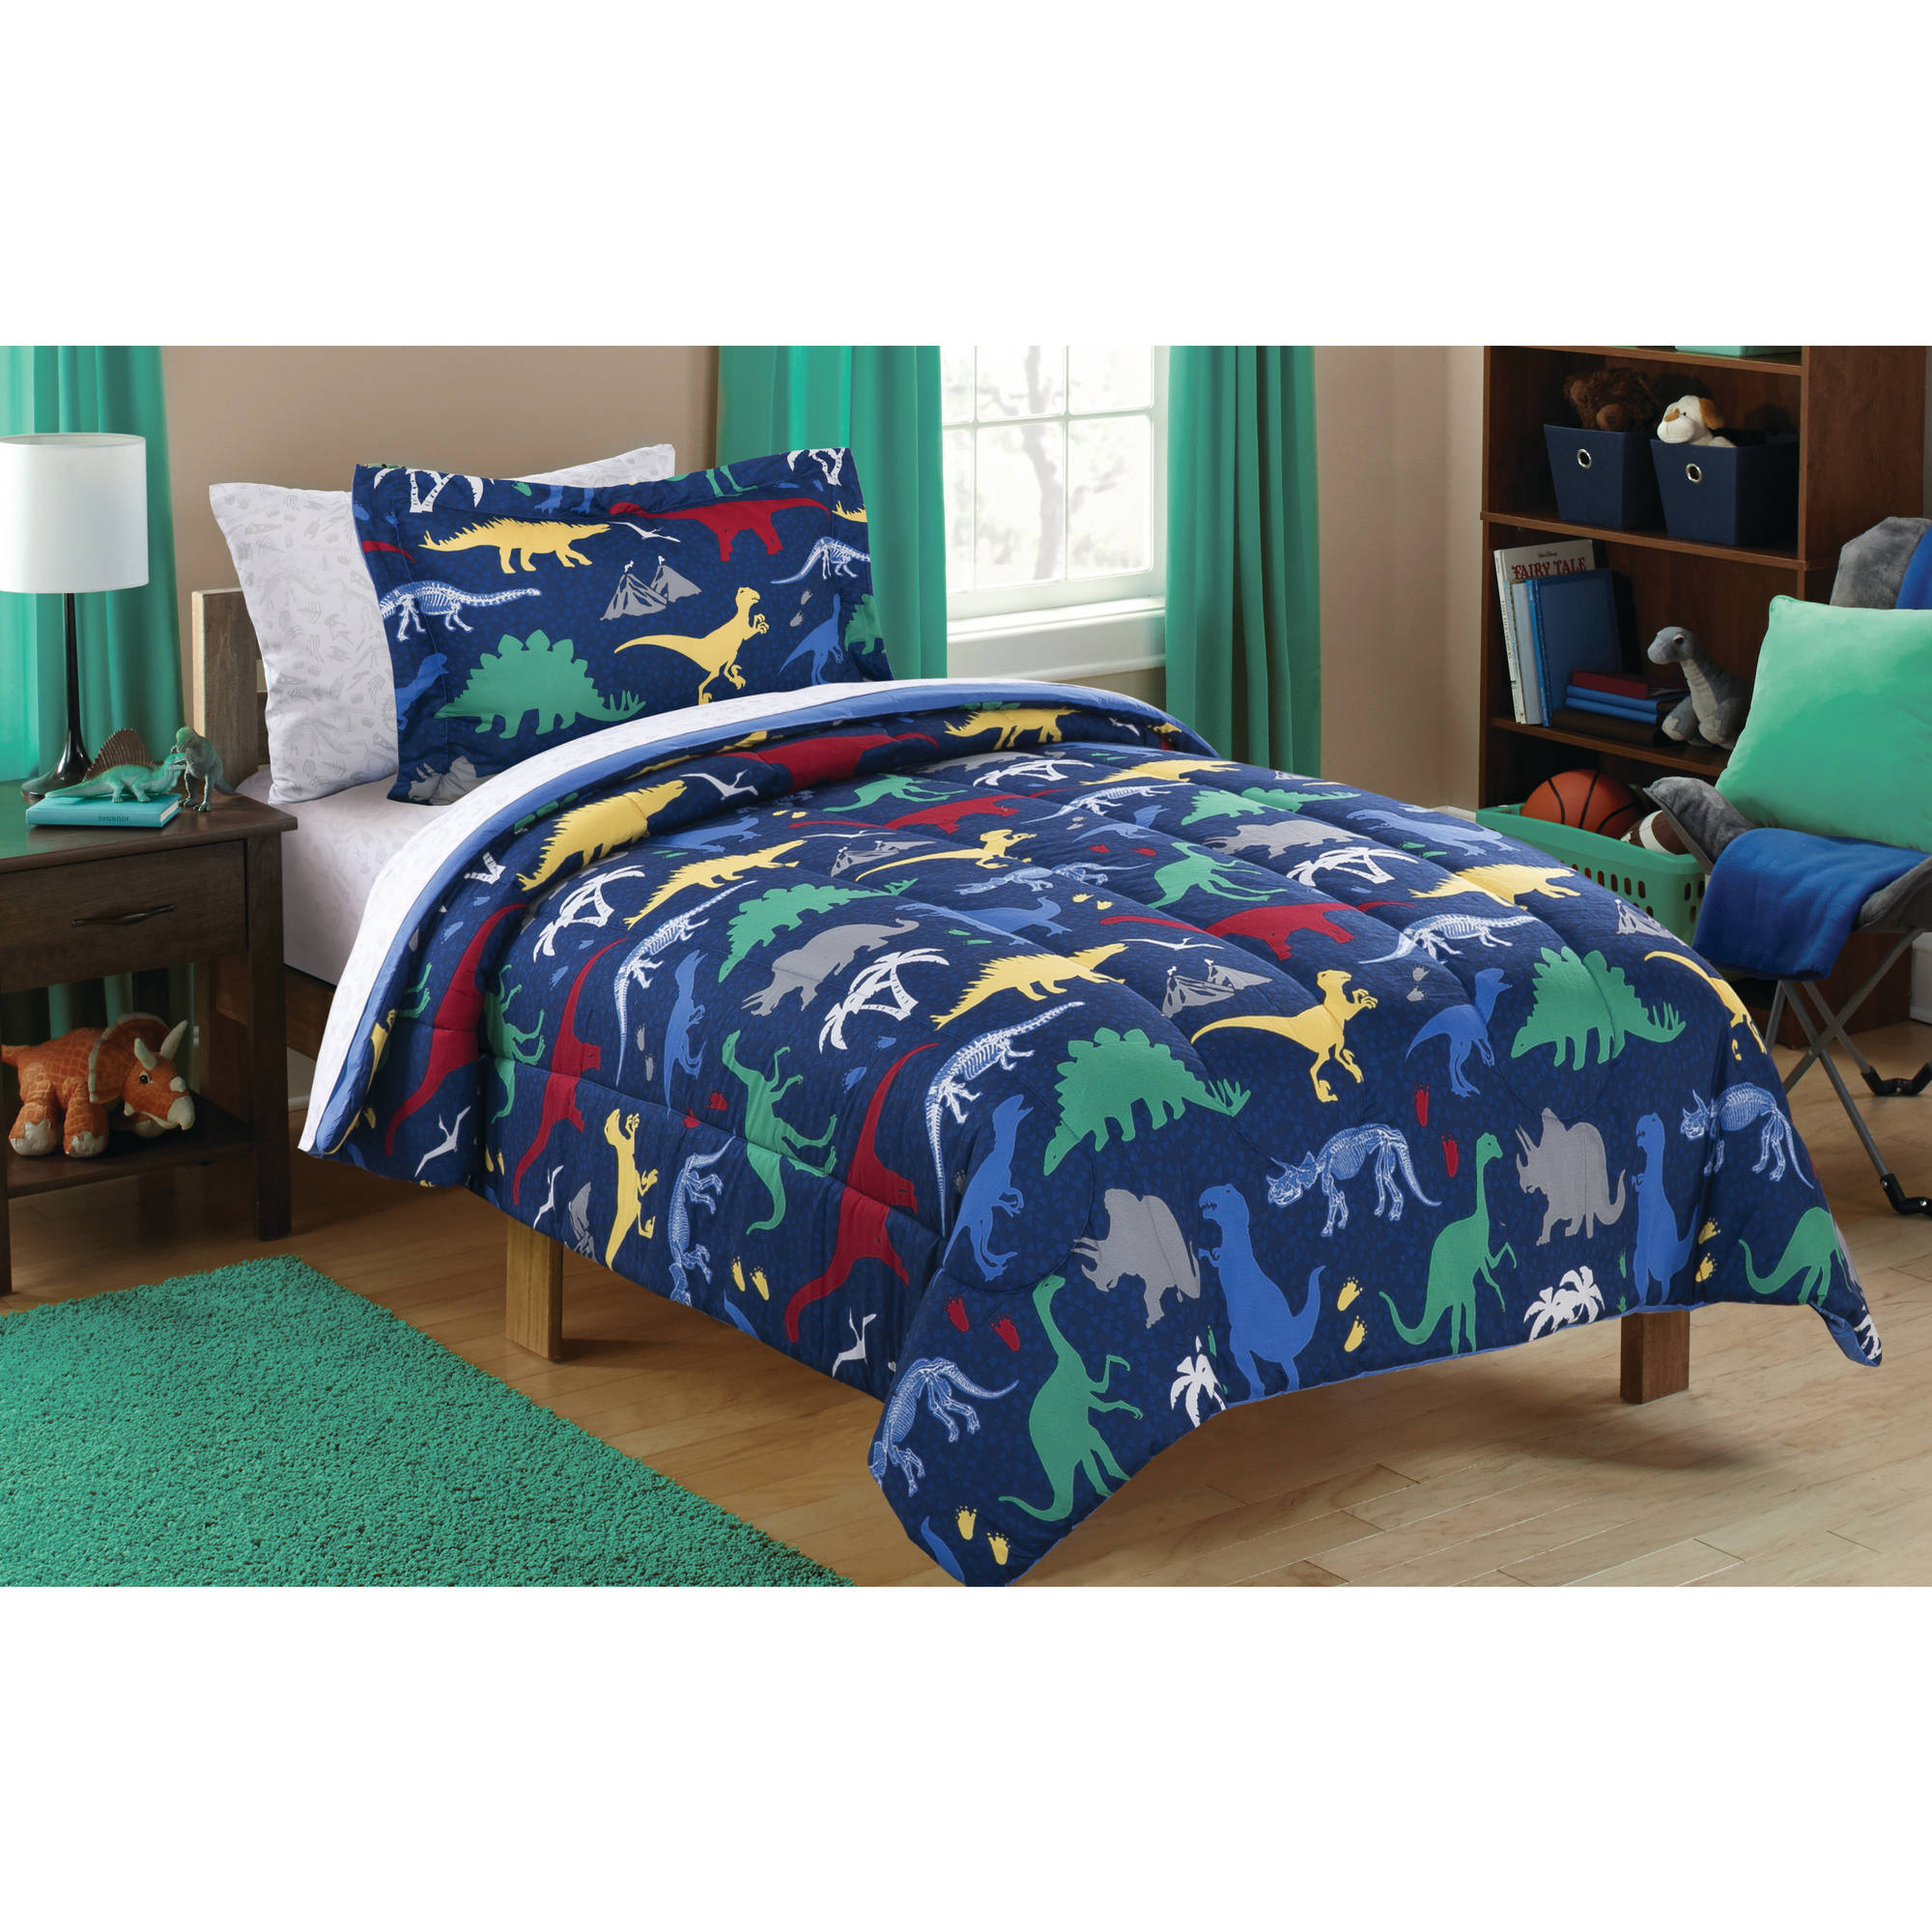 Mainstays Kids Dino Roam Bed in a Bag Bedding Set